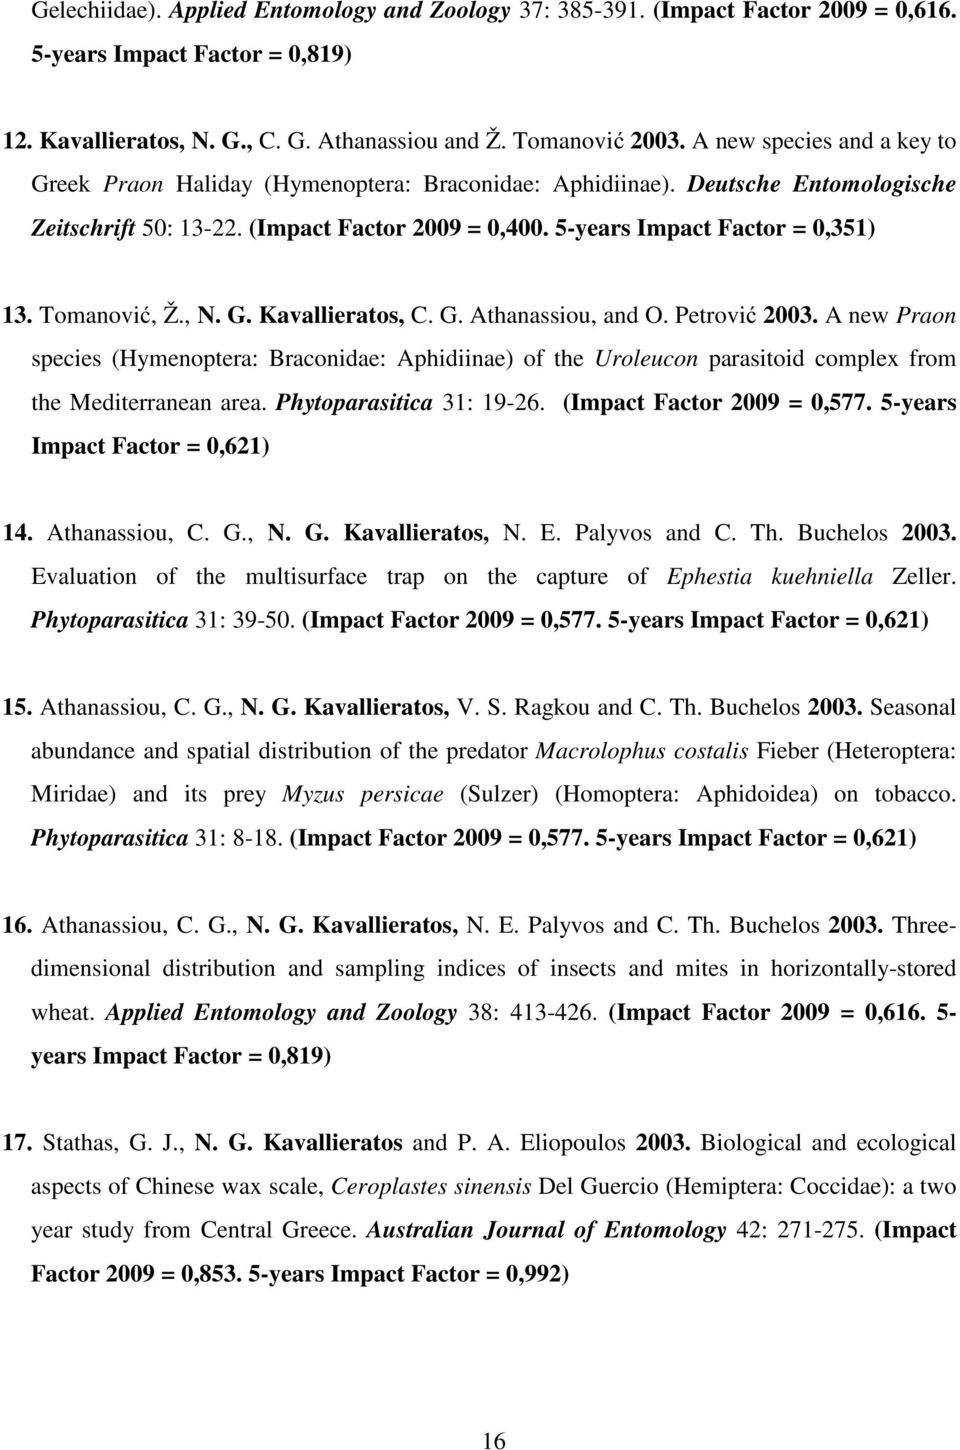 Tomanović, Ž., N. G. Kavallieratos, C. G. Athanassiou, and O. Petrović 2003. A new Praon species (Hymenoptera: Braconidae: Aphidiinae) of the Uroleucon parasitoid complex from the Mediterranean area.